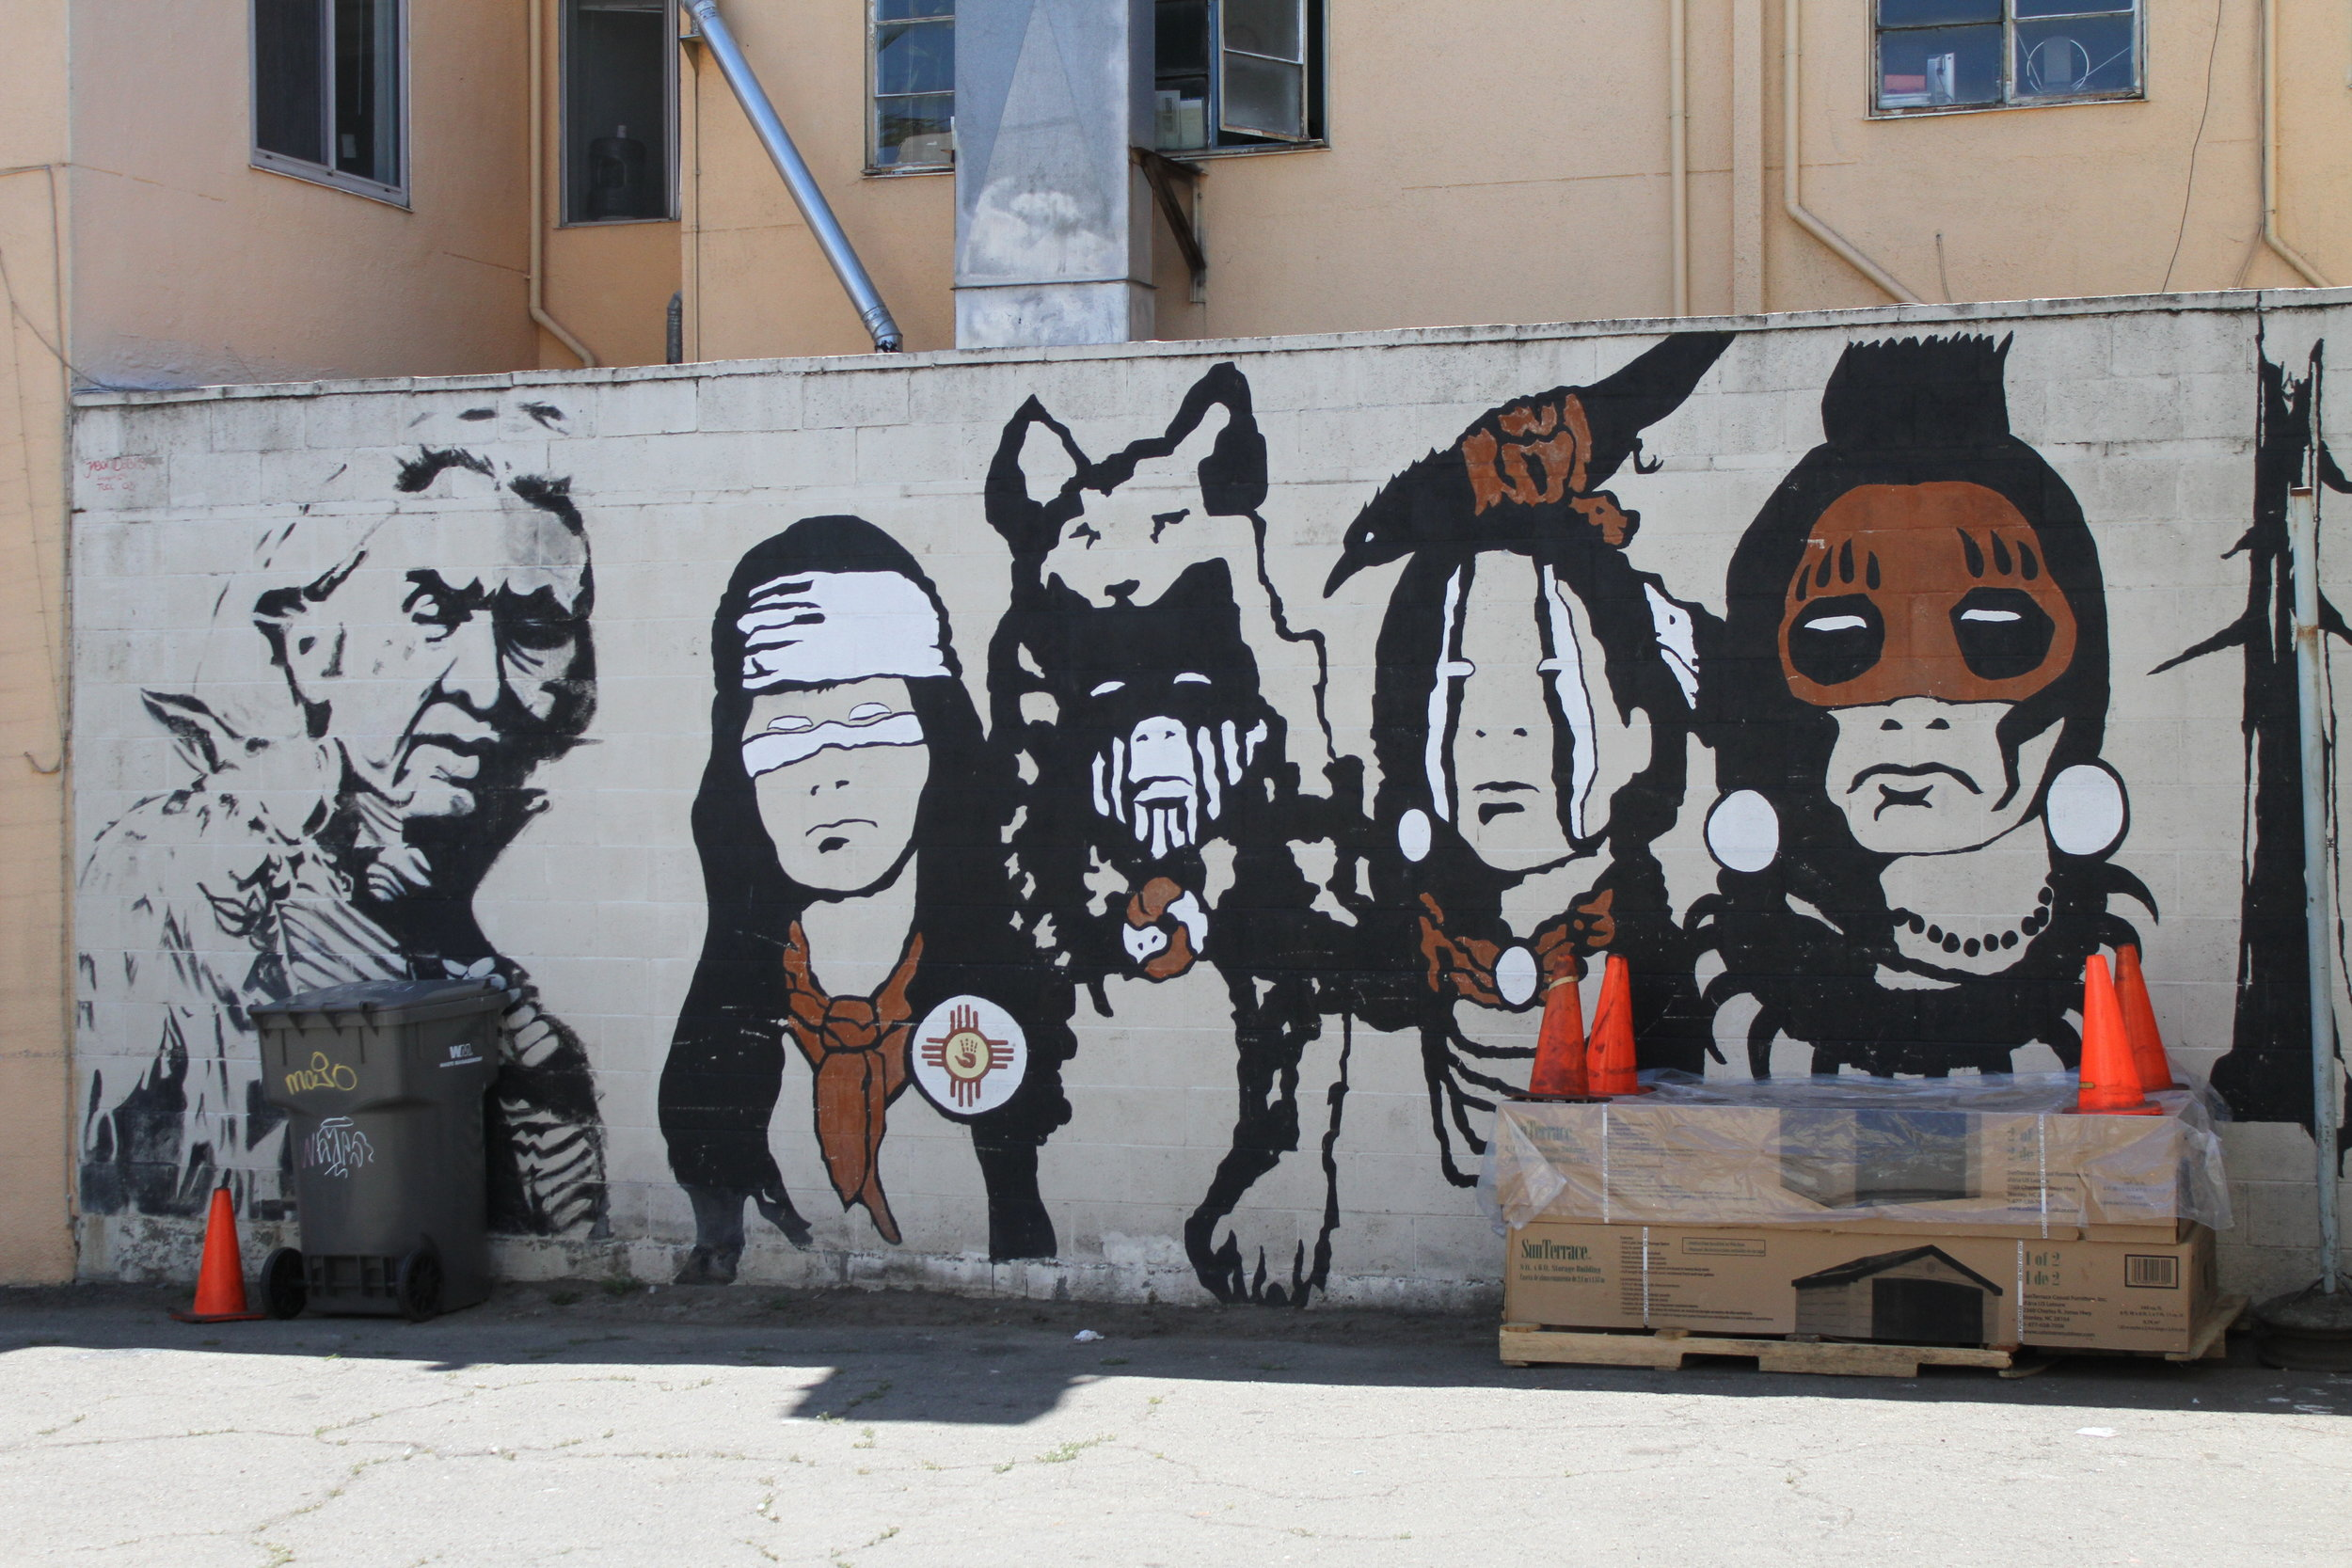 "Location Shot: Intertribal Friendship House in Oakland ""Indian Activist Mural"""